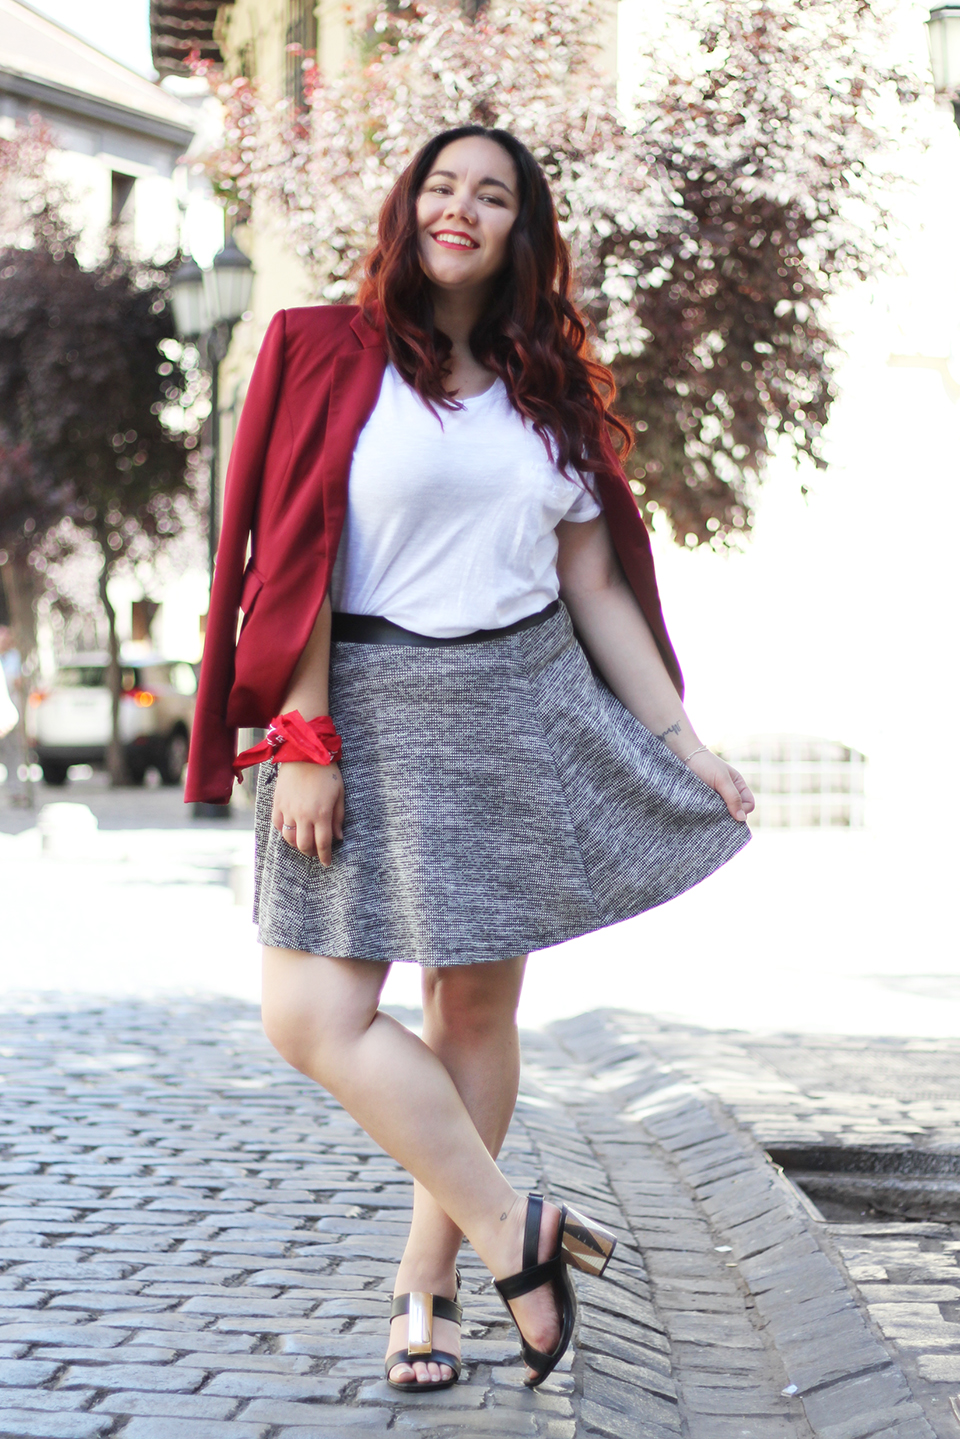 christmas-look-merry-holidays-h&m-dafiti-chile-street-style-summer-red-blazer